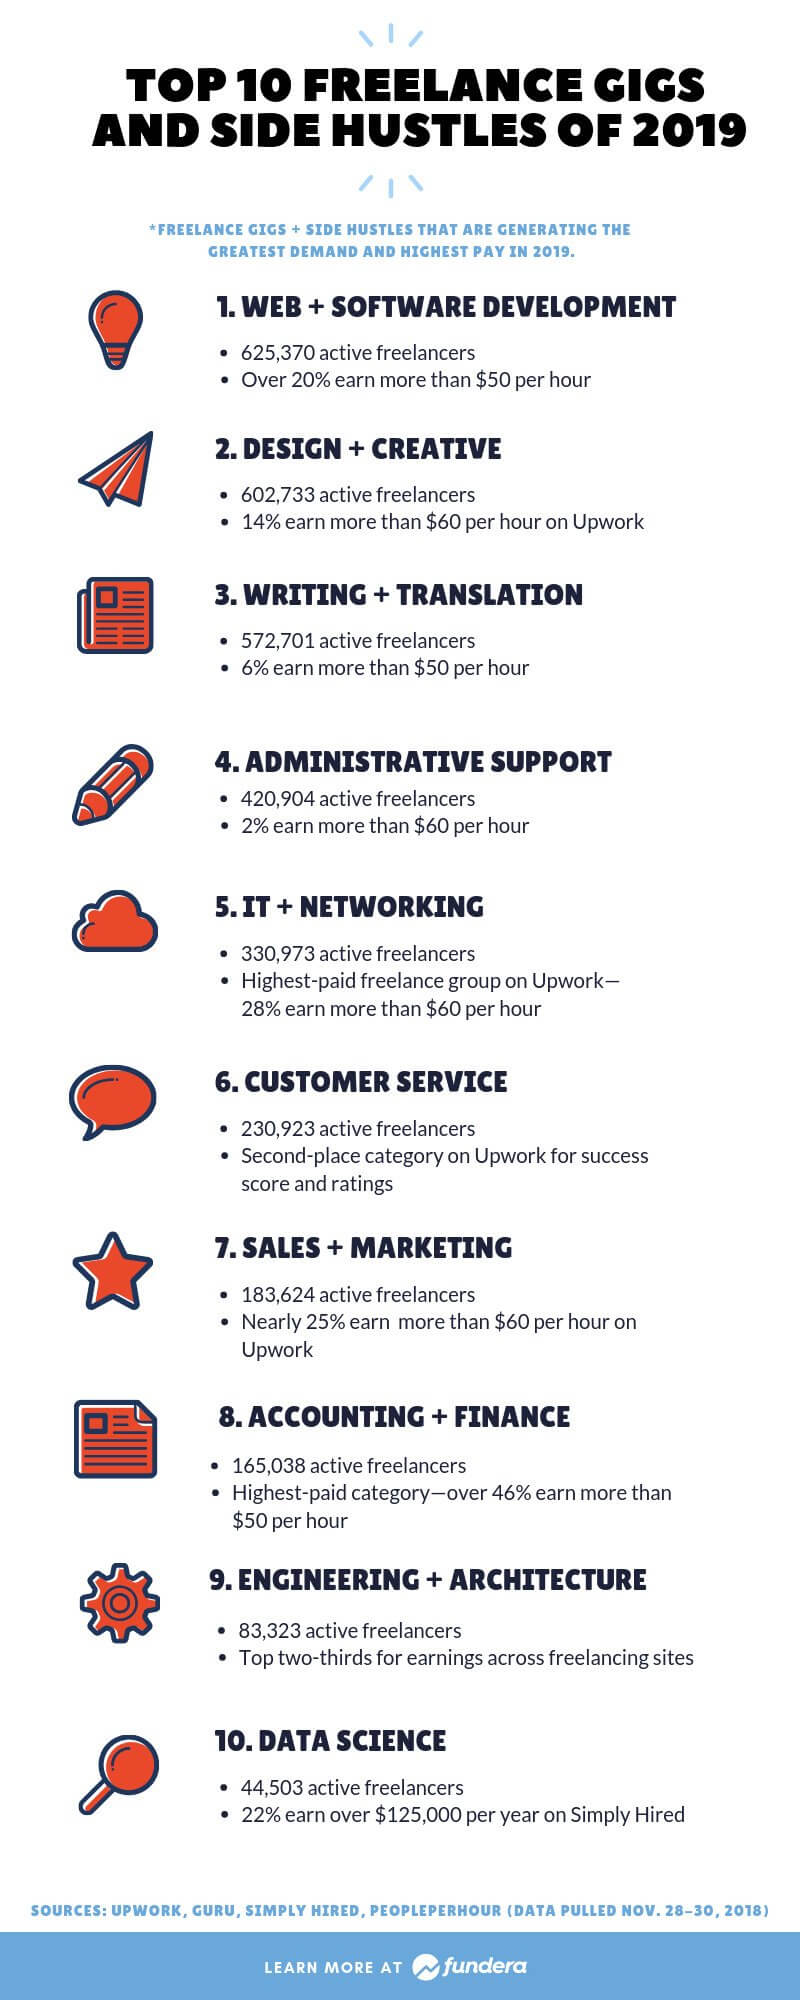 Infographic: Top 10 freelance side gigs and side hustles of 2019